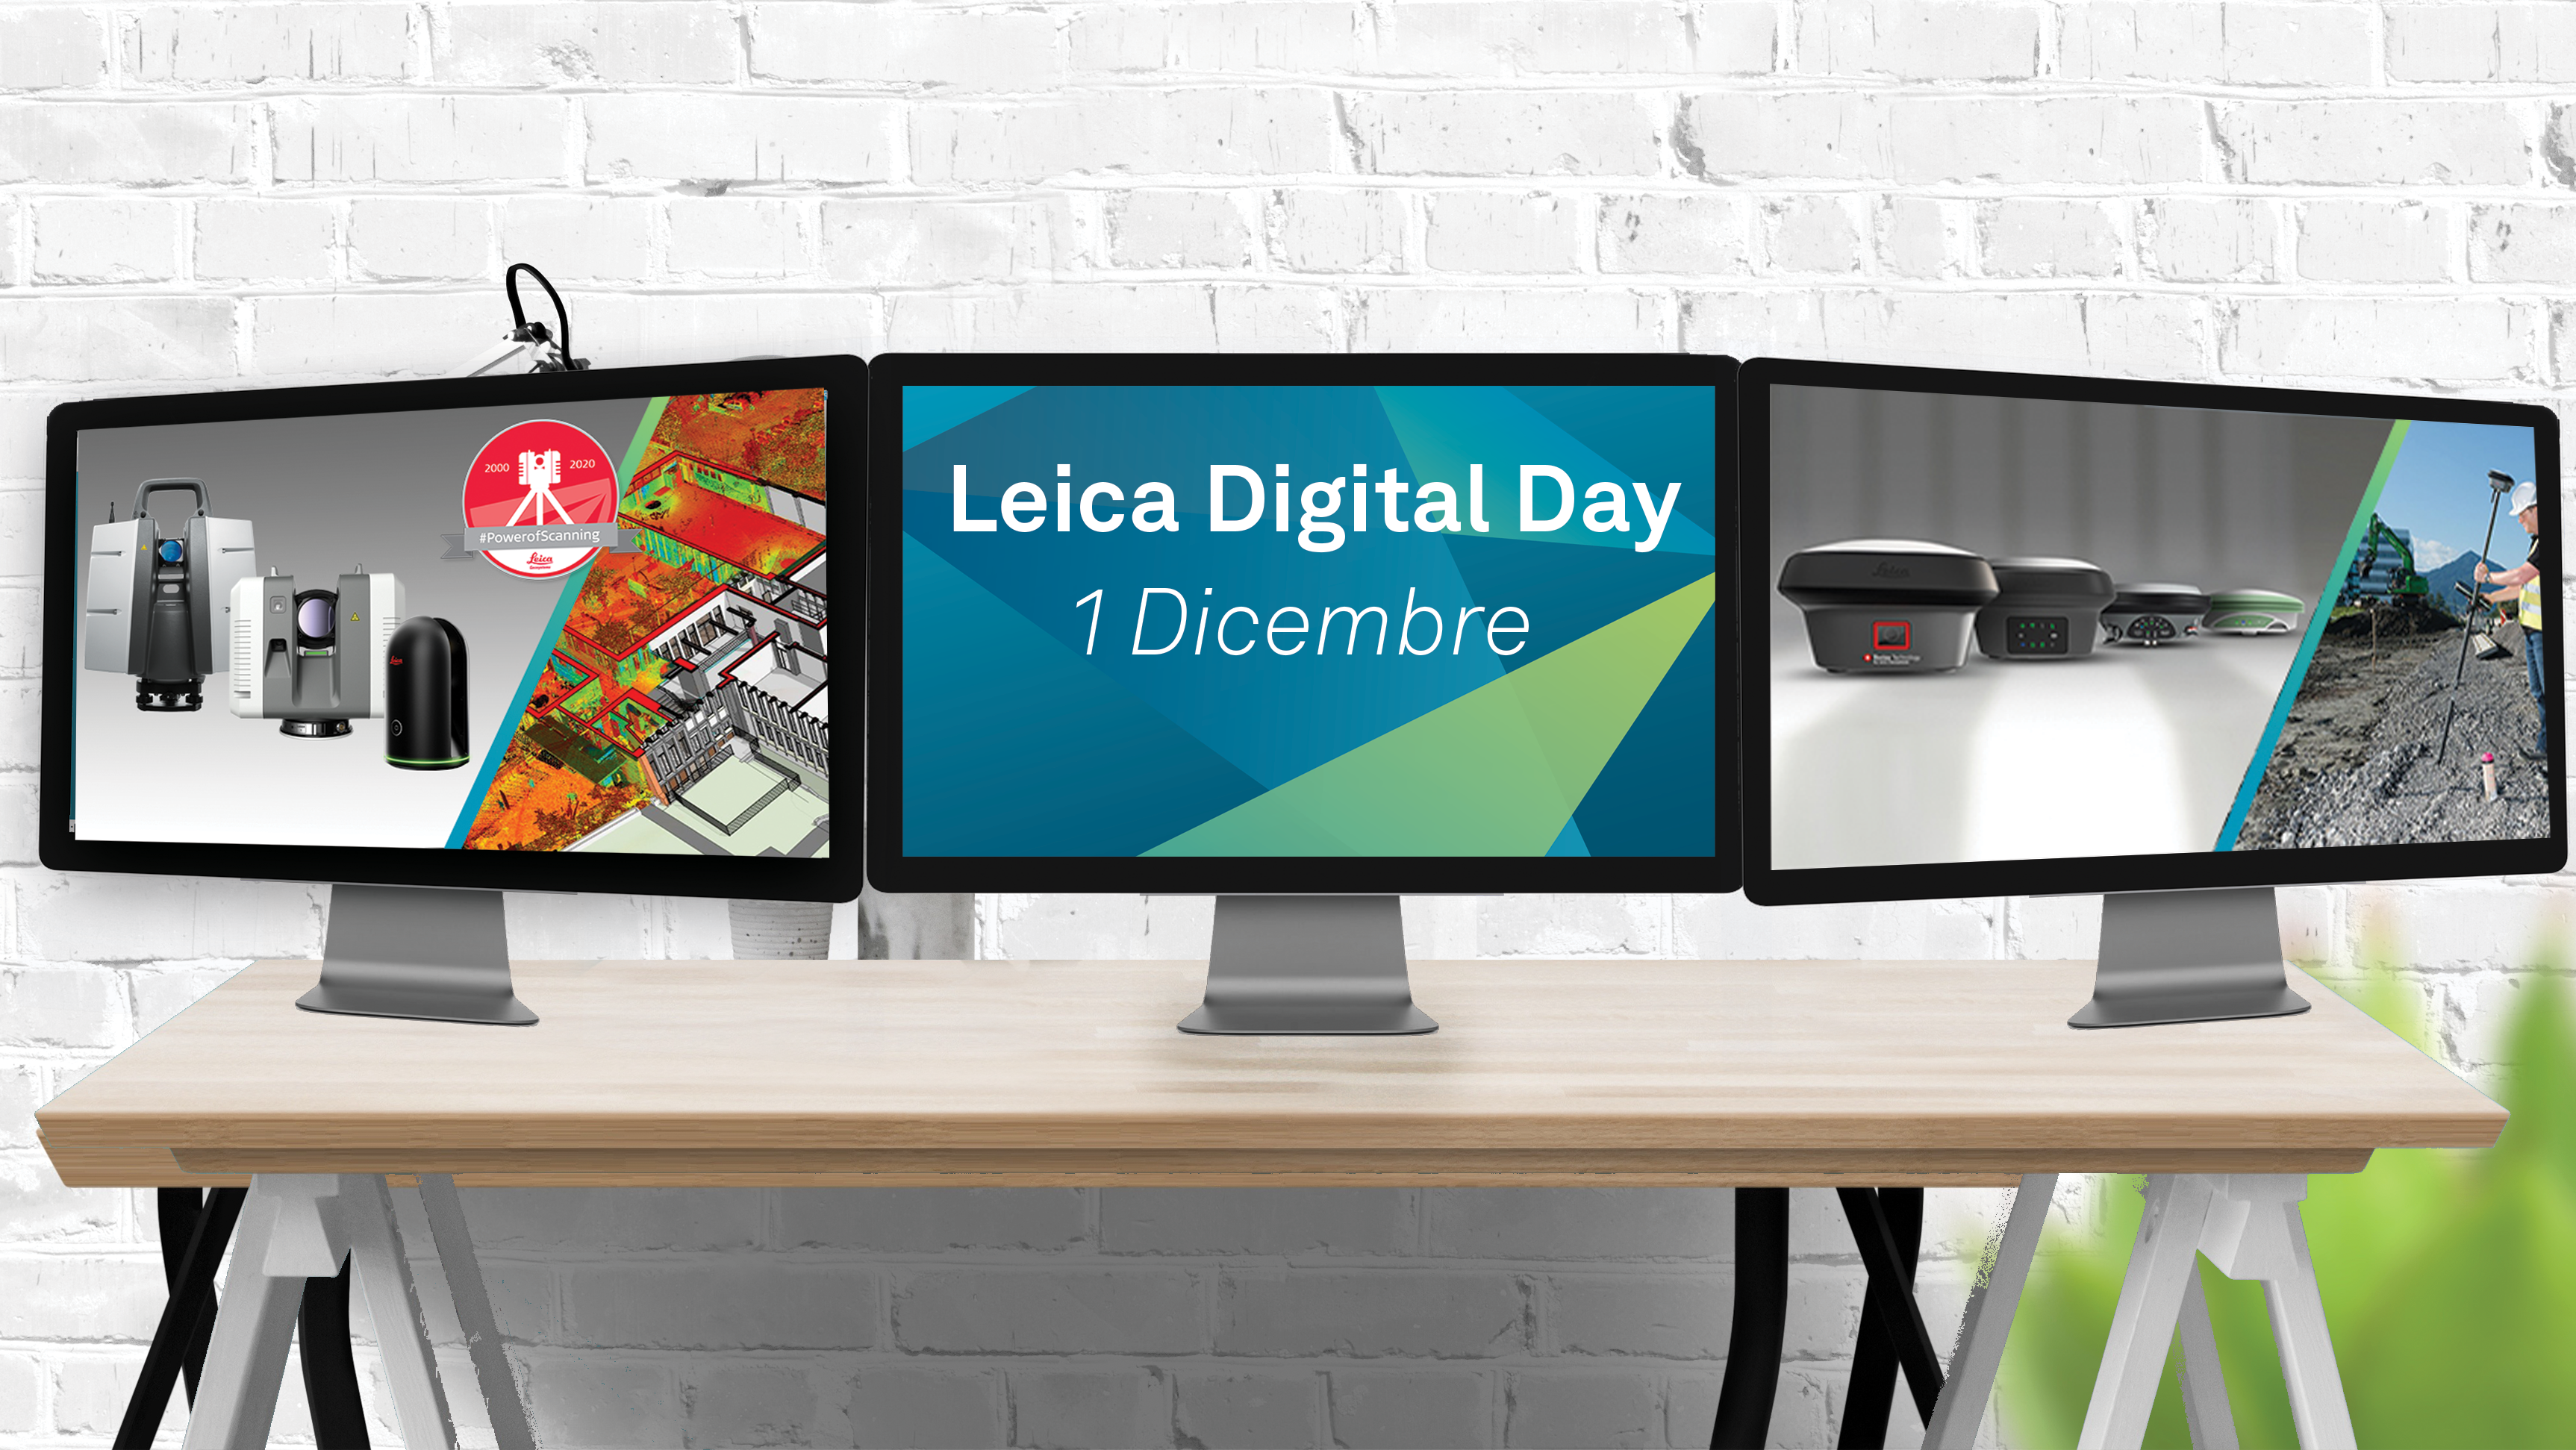 Leica Digital Day